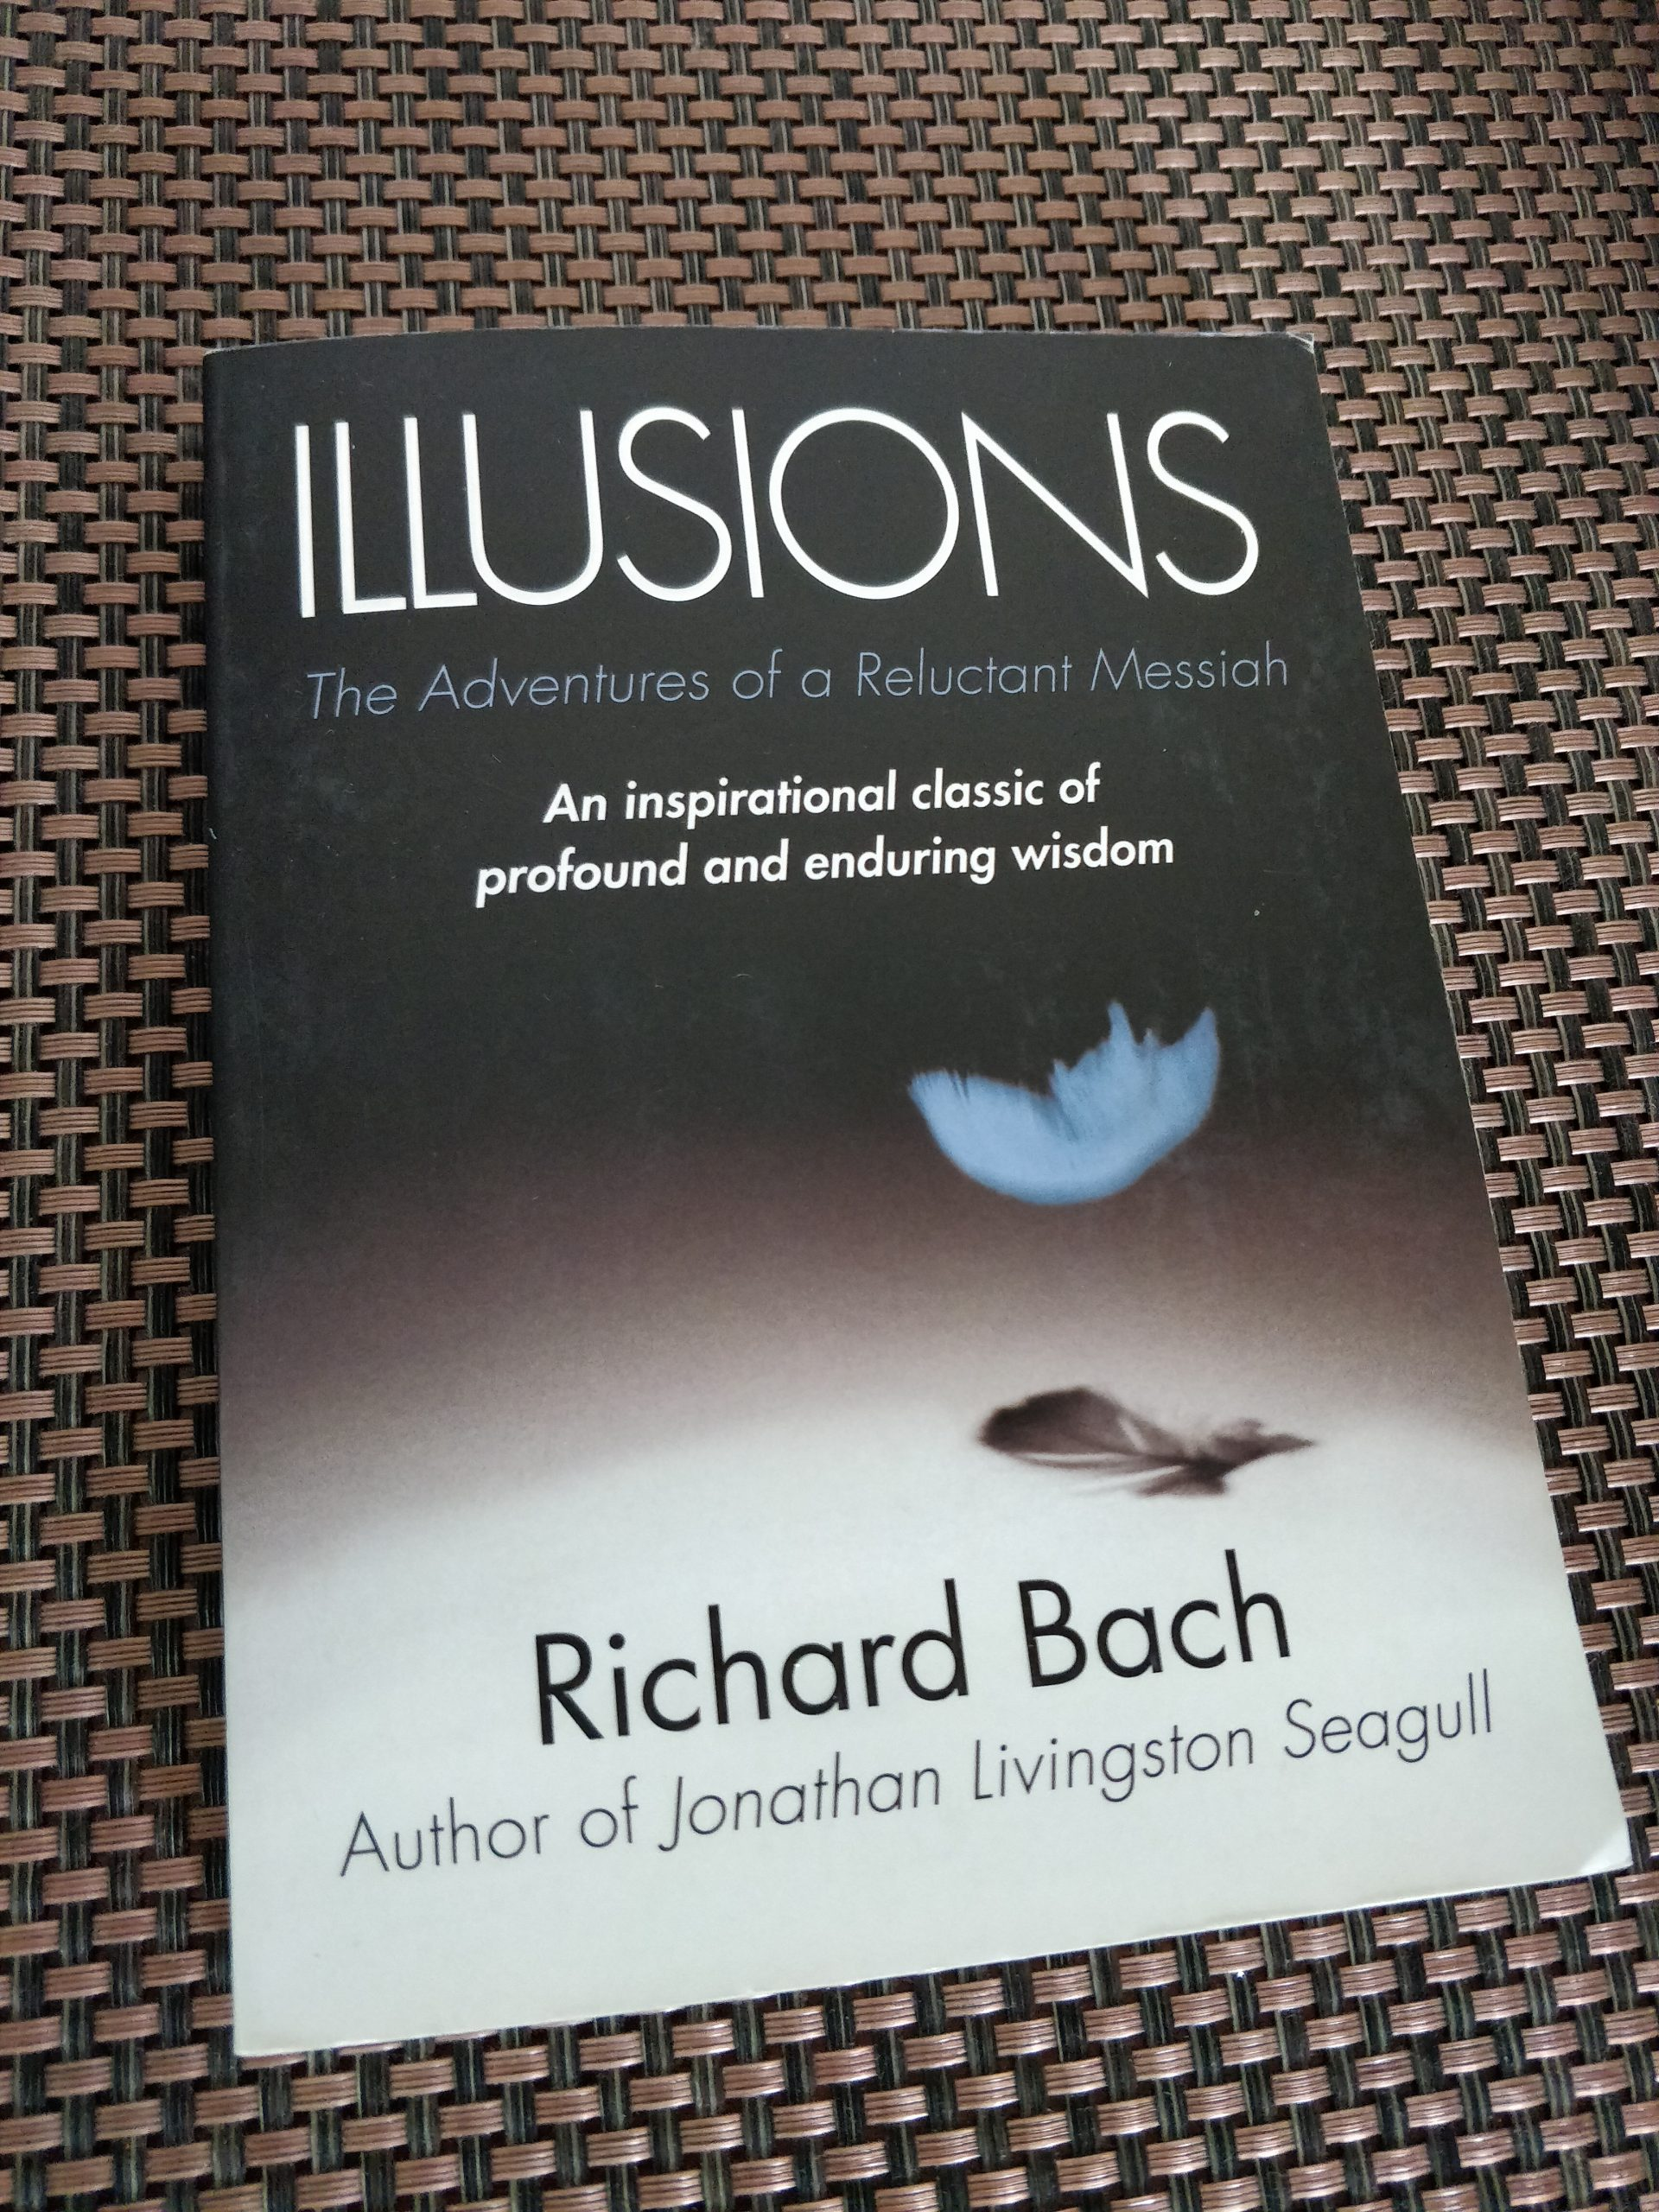 illusions by richard bach, Spiritual Books